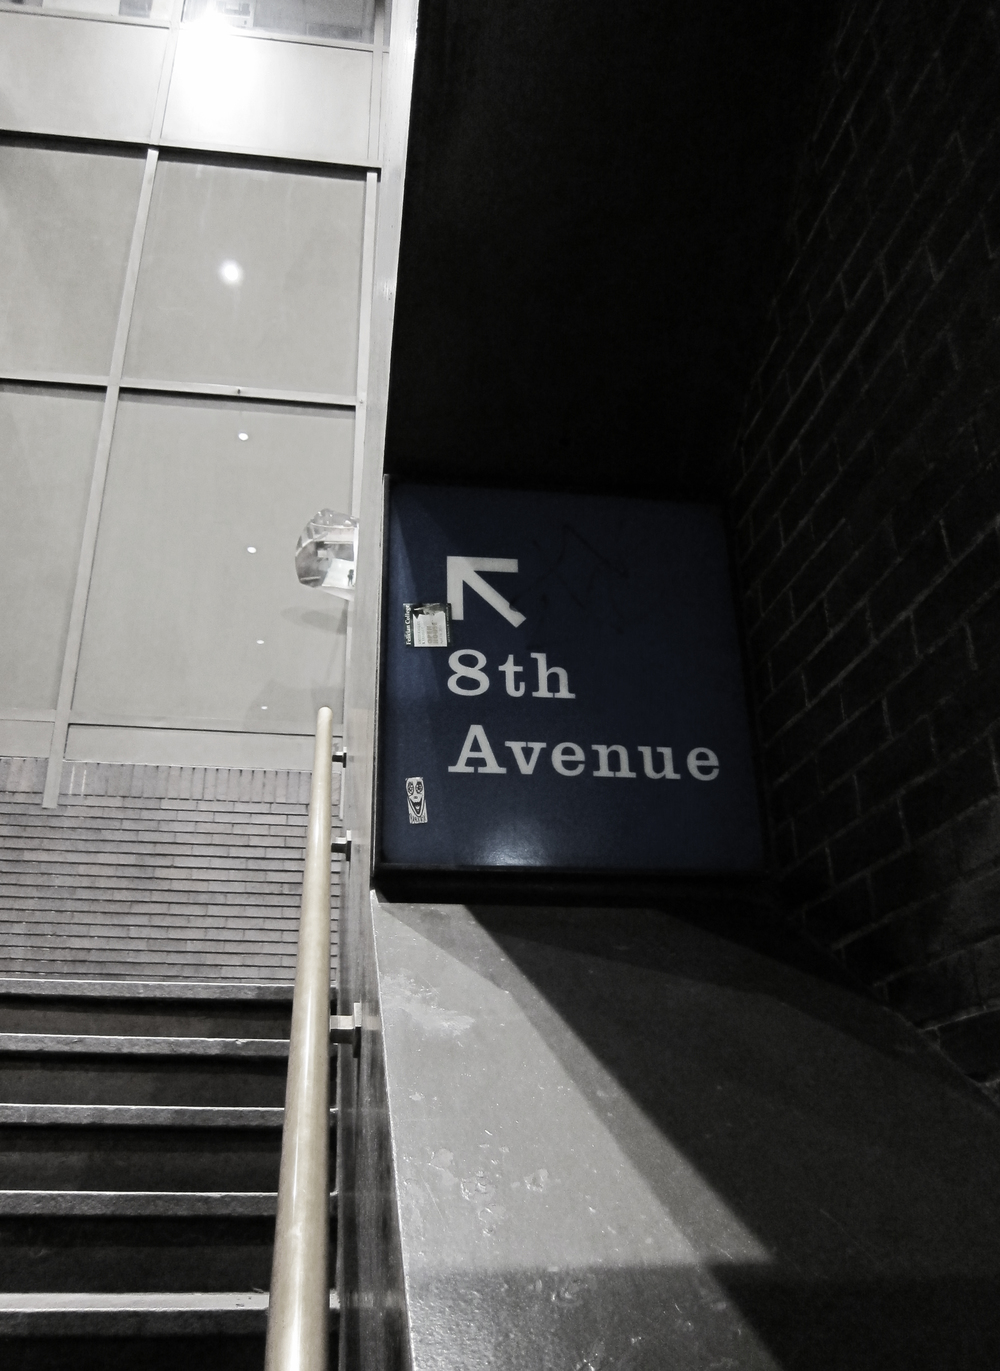 8th Ave